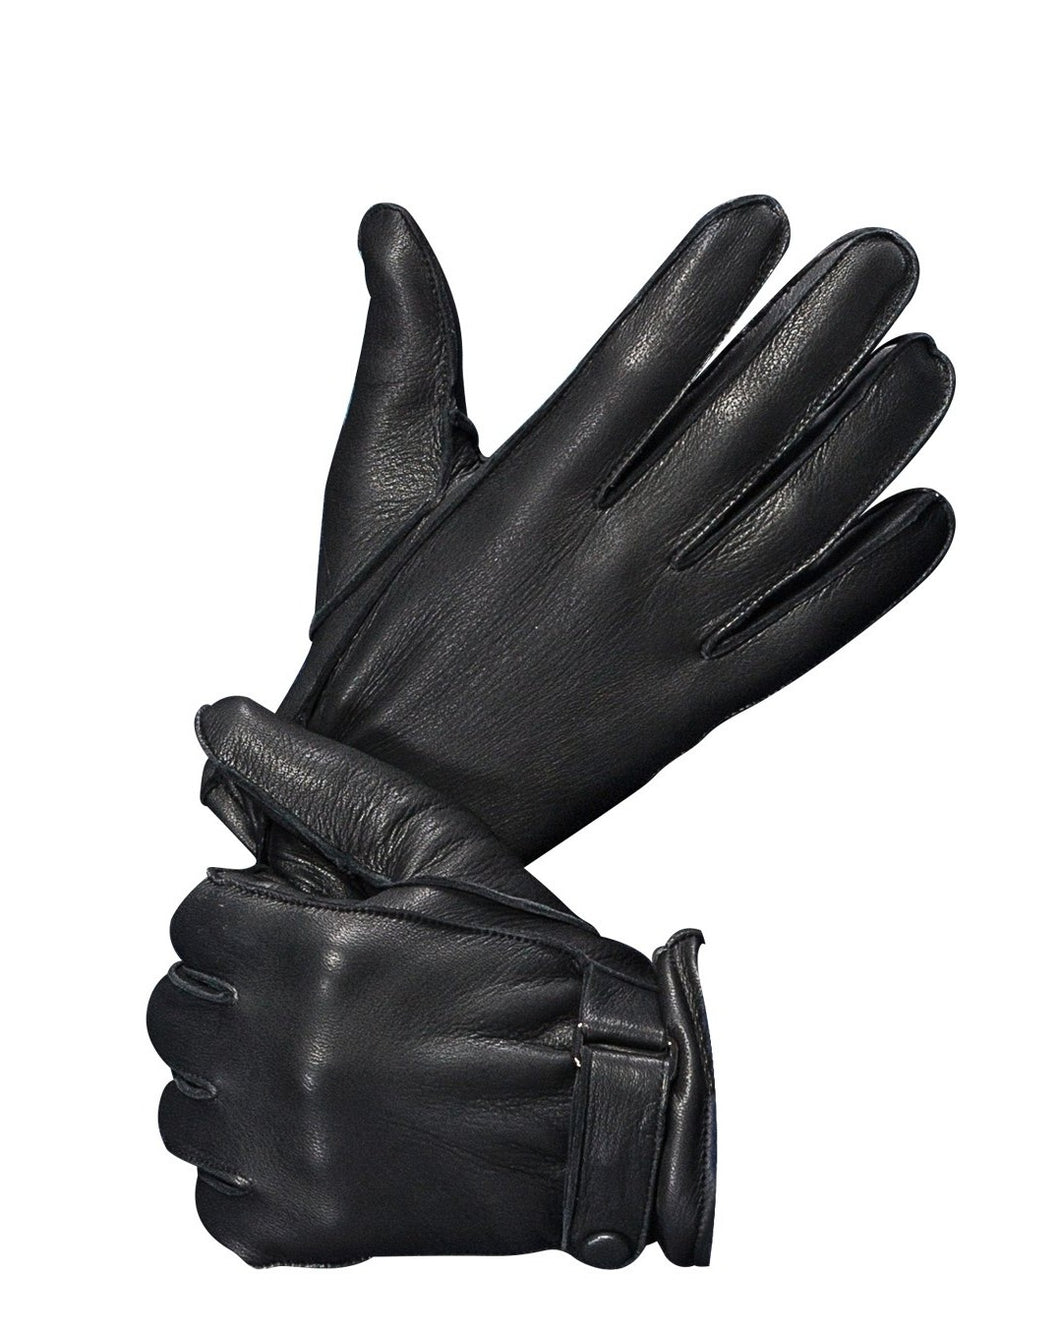 Men's Deerskin Leather Gloves with Classical Belt